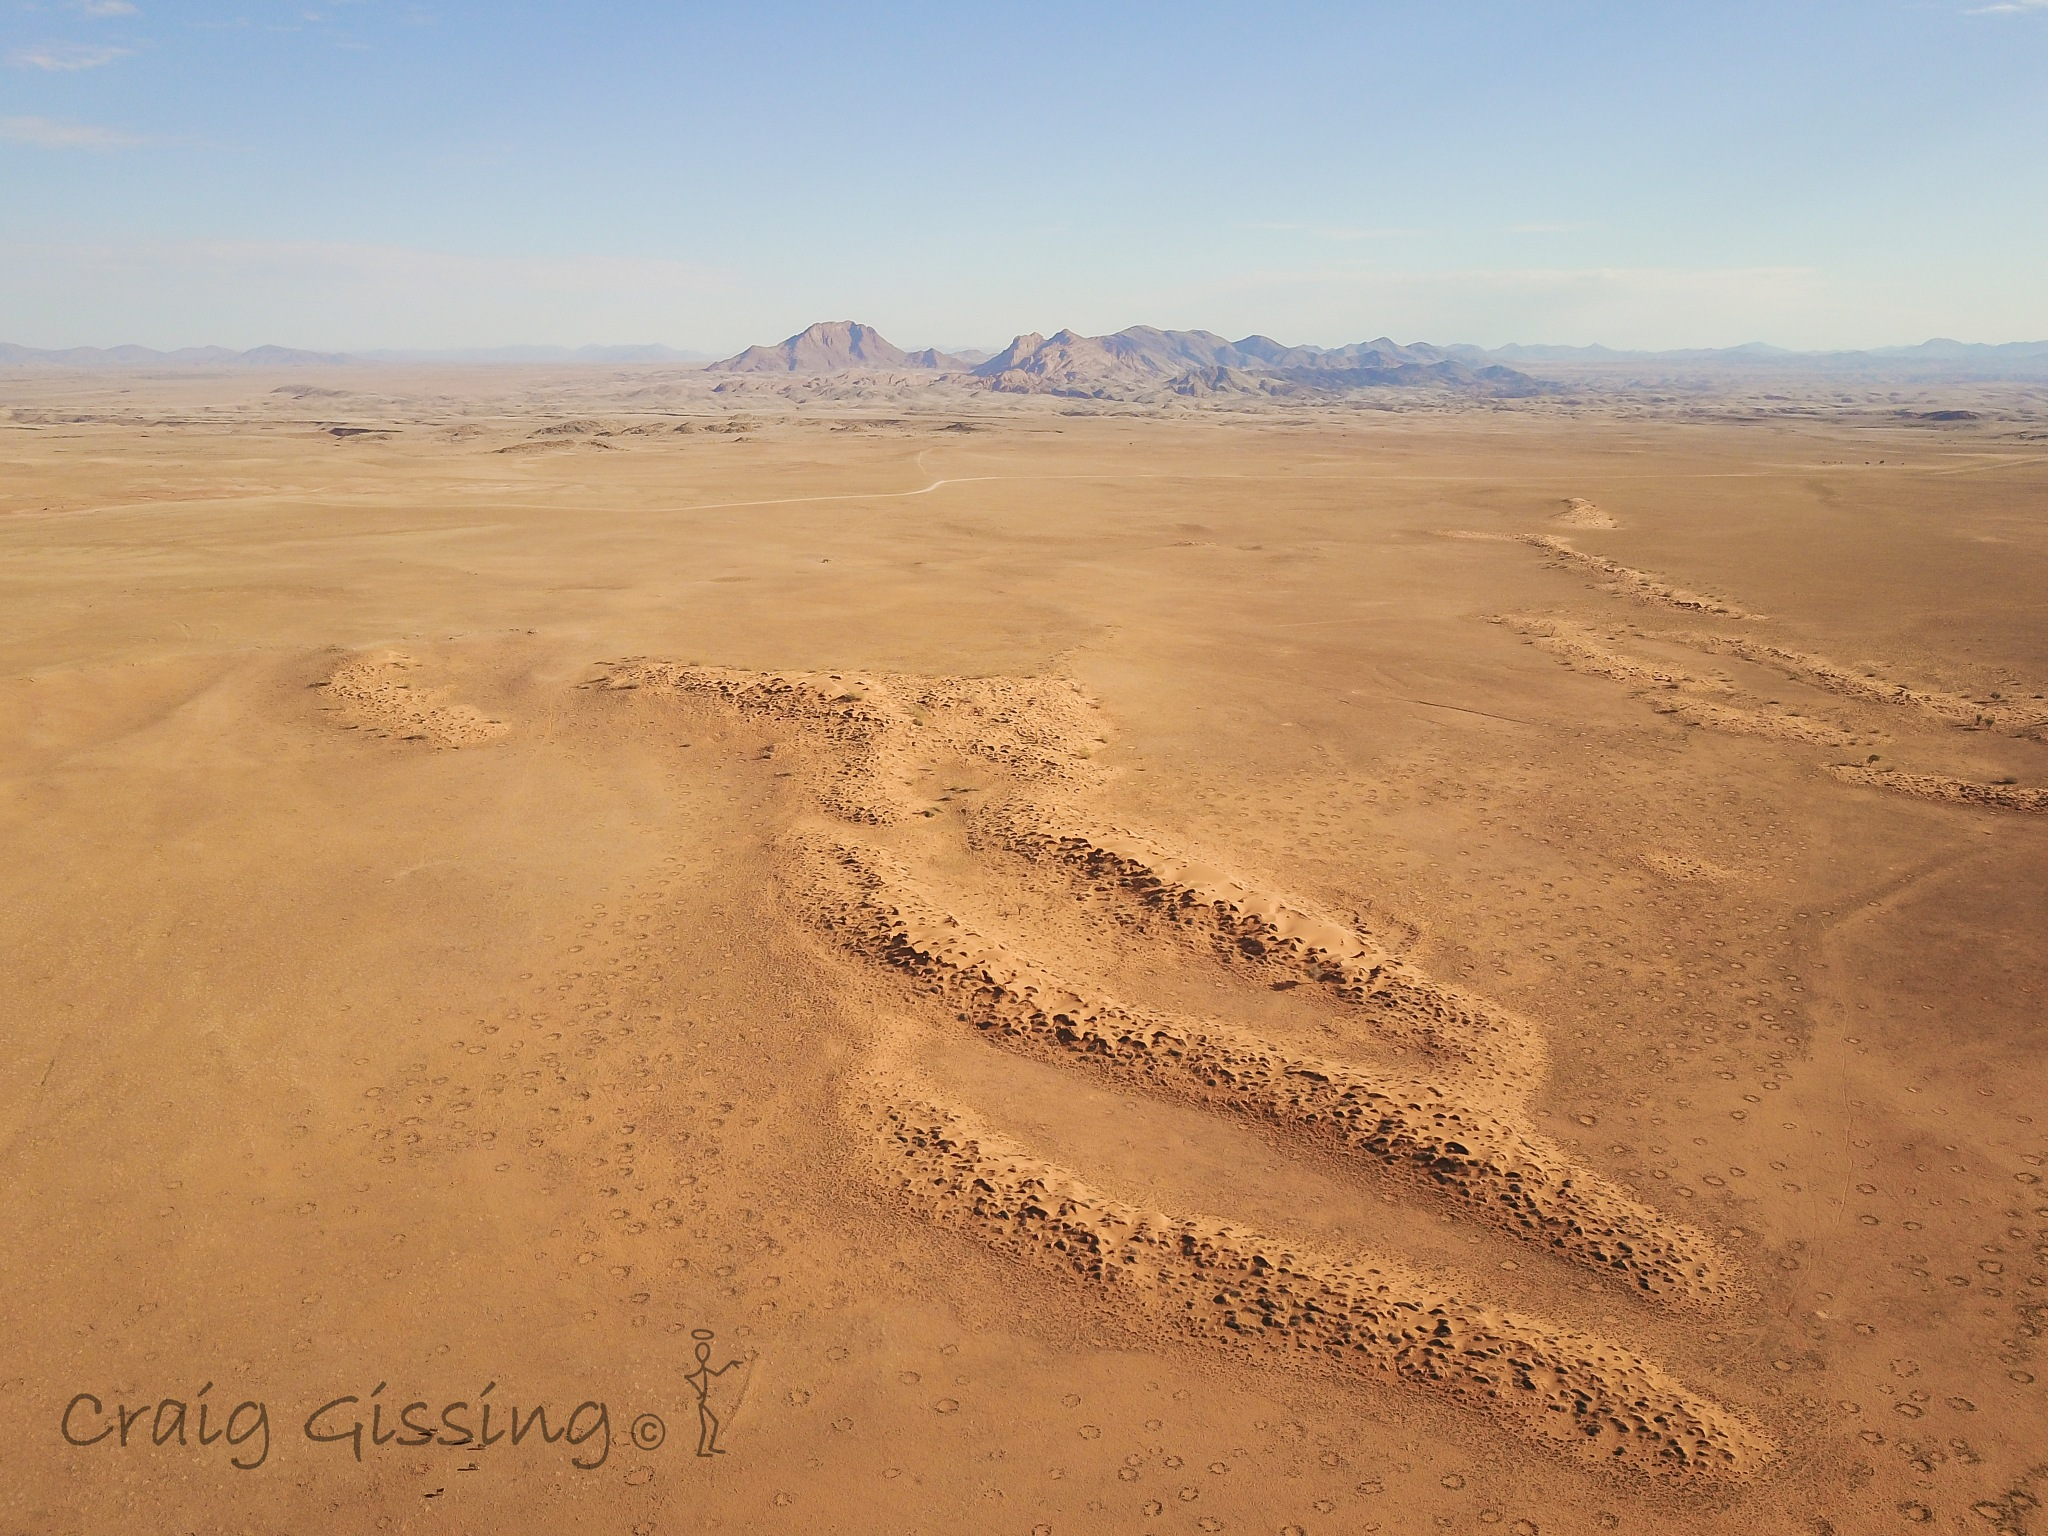 Fairy circles in the desert by craig.gissing